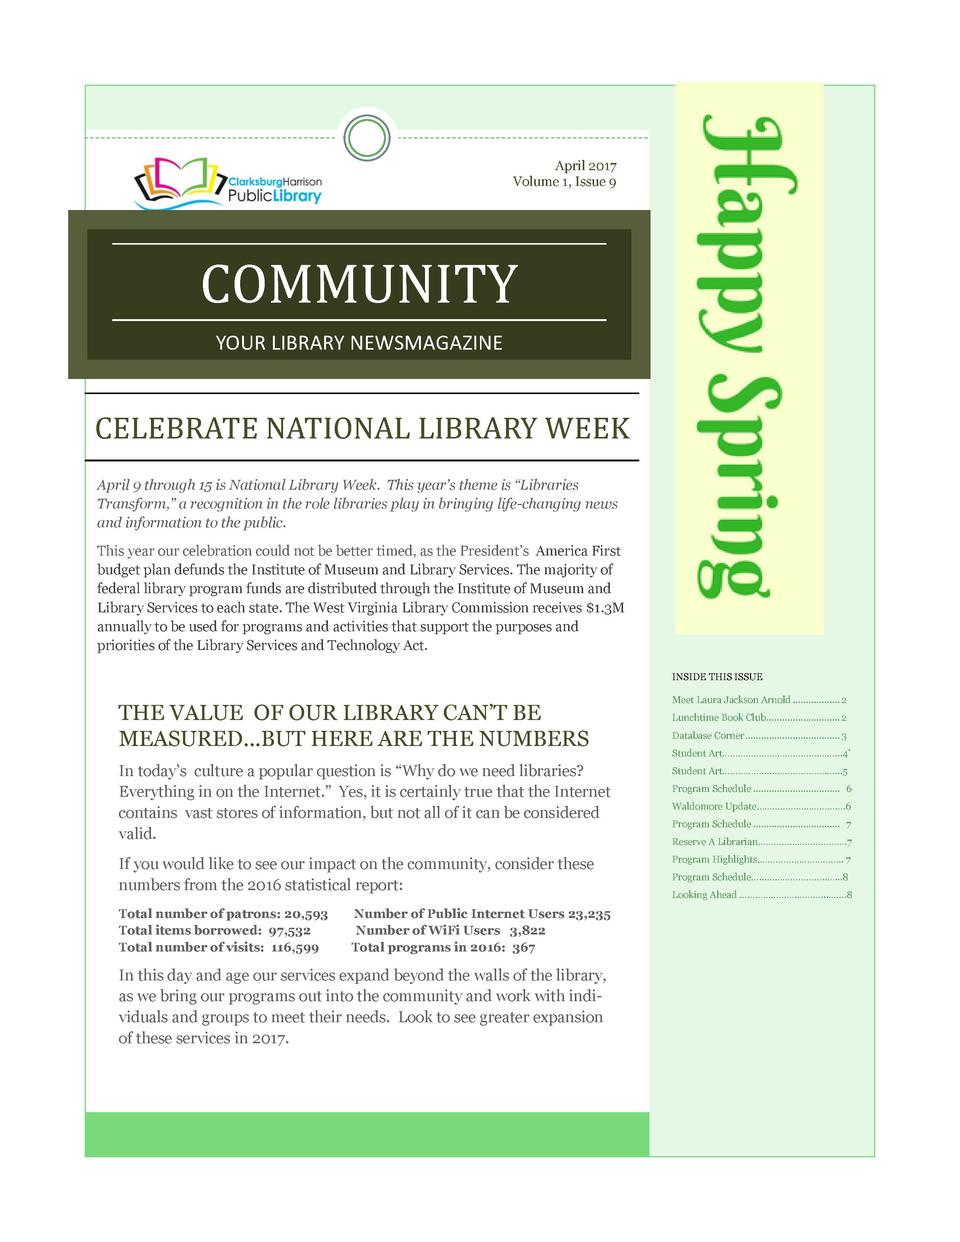 April 2017 Volume 1, Issue 9  COMMUNITY YOUR LIBRARY NEWSMAGAZINE  CELEBRATE NATIONAL LIBRARY WEEK April 9 through 15 is N...